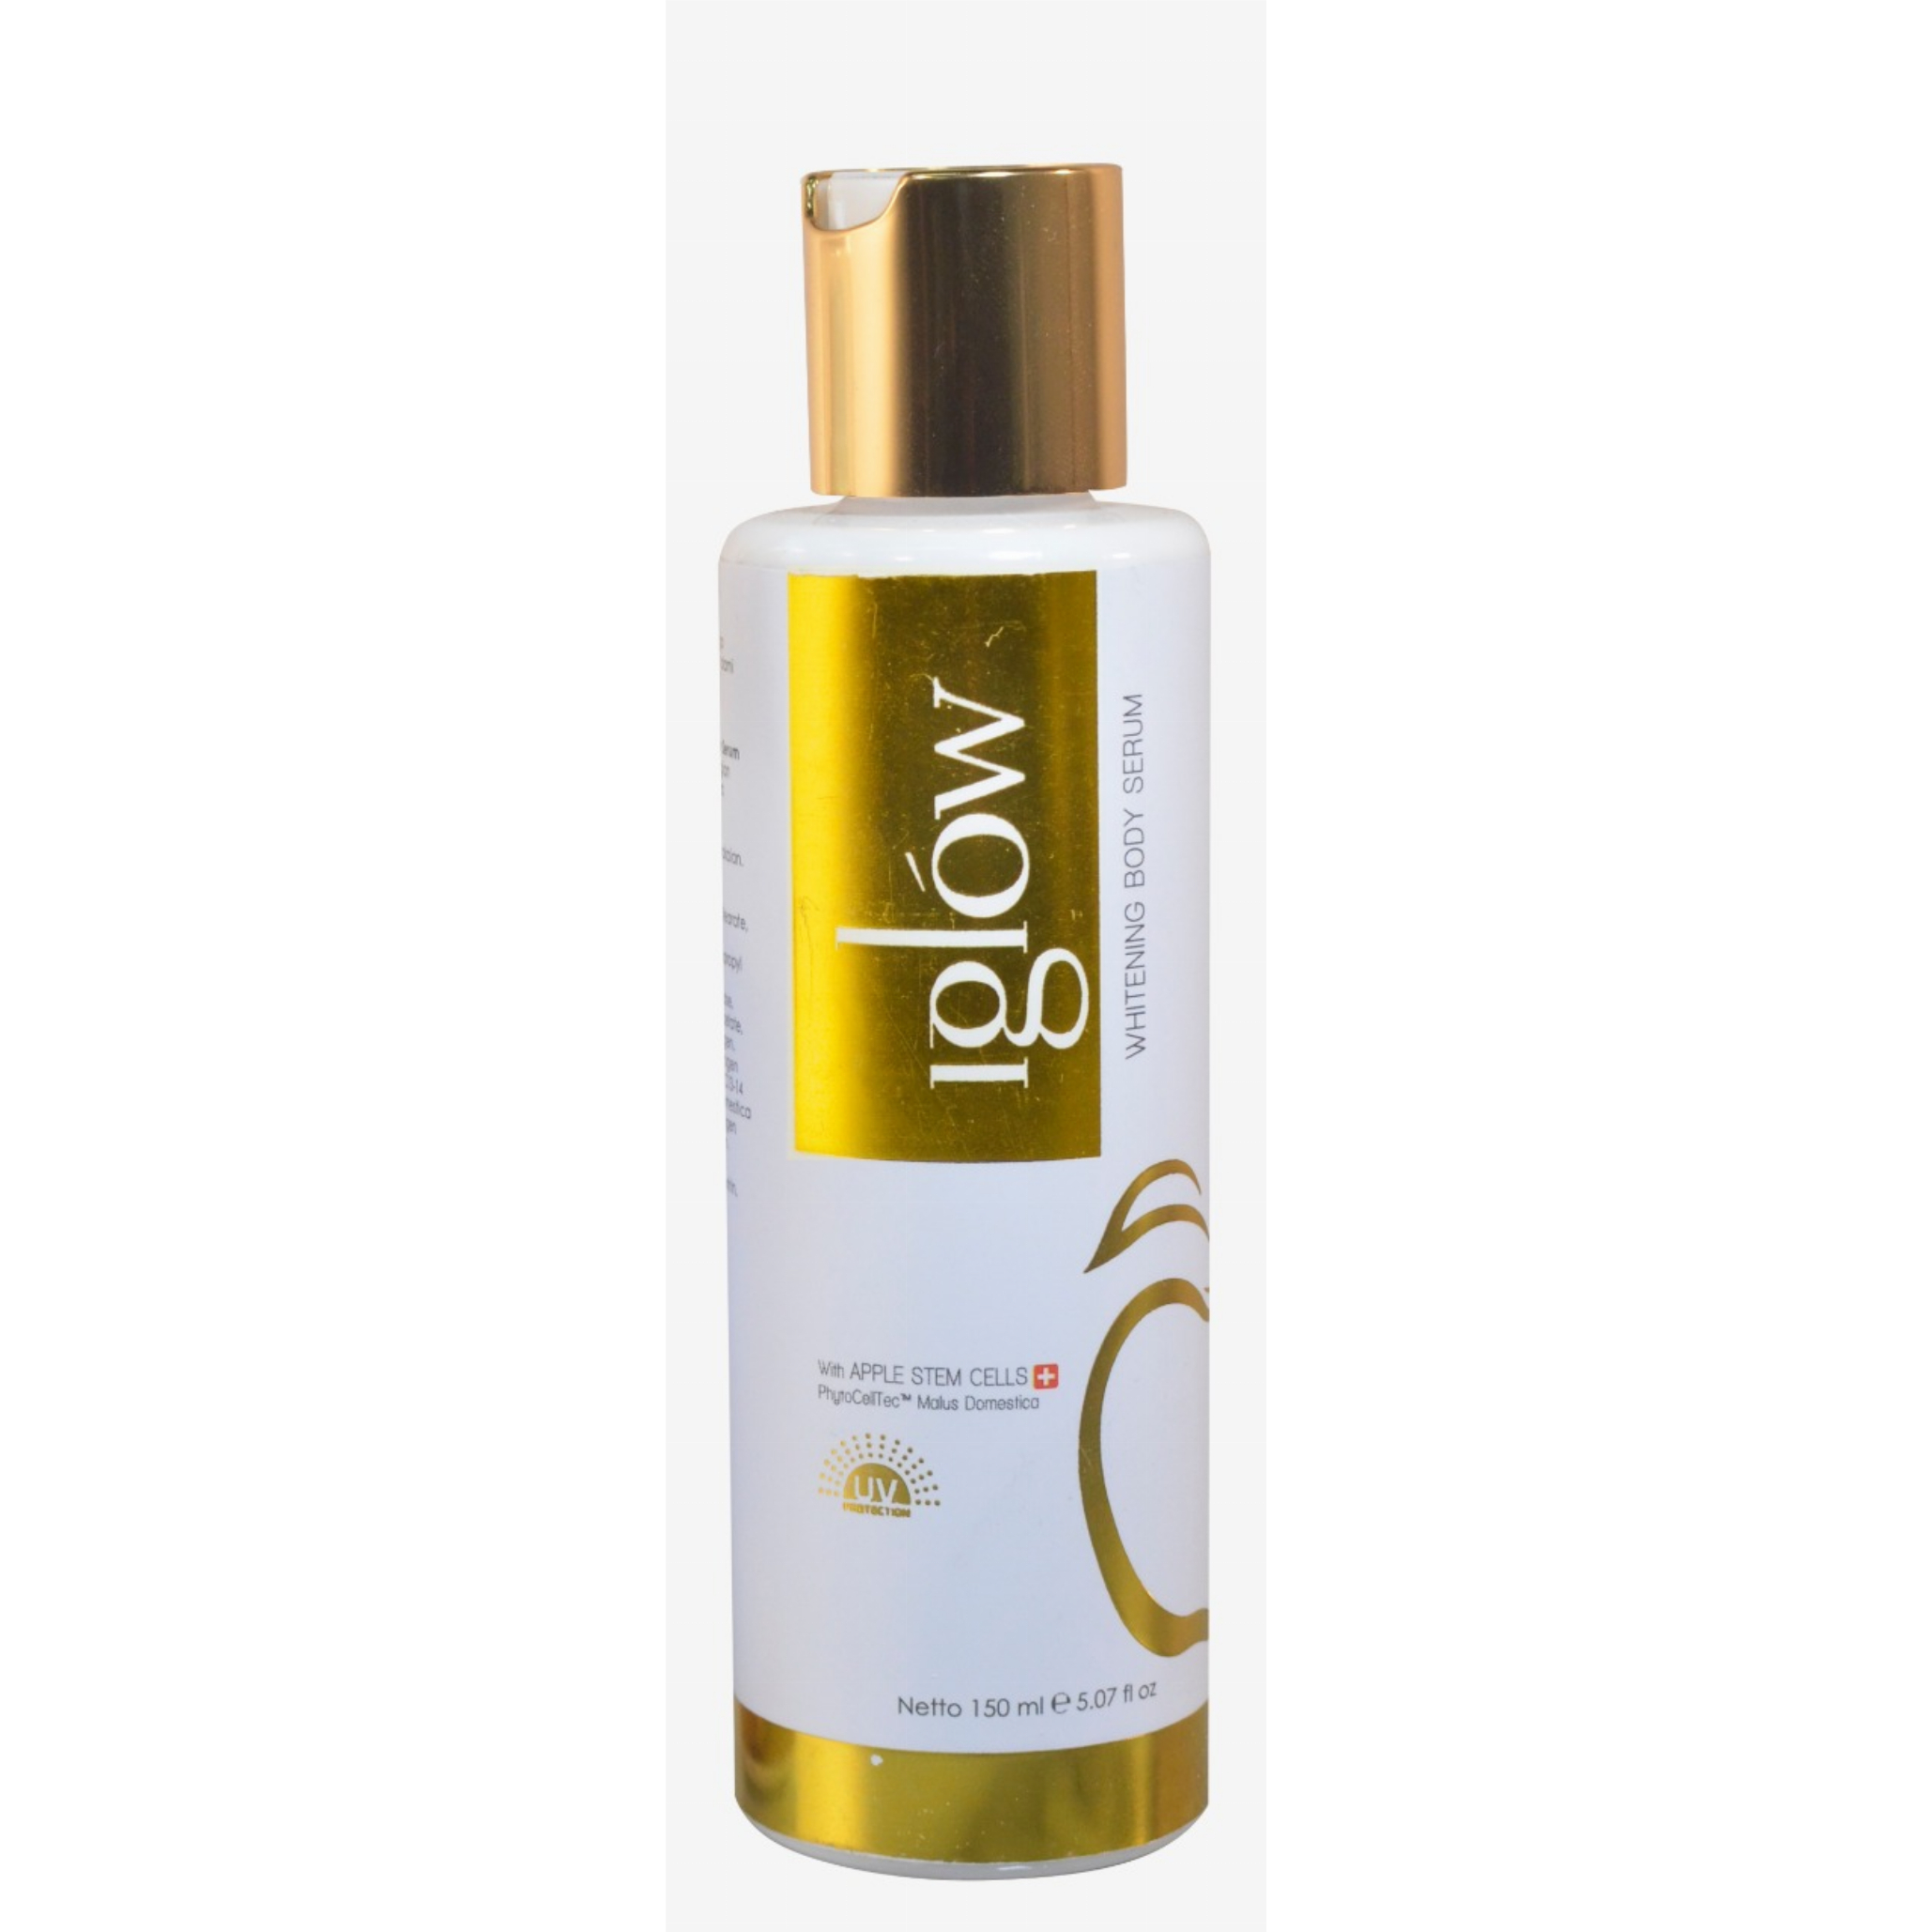 Lotion Whitening Body Serum | IGLOW